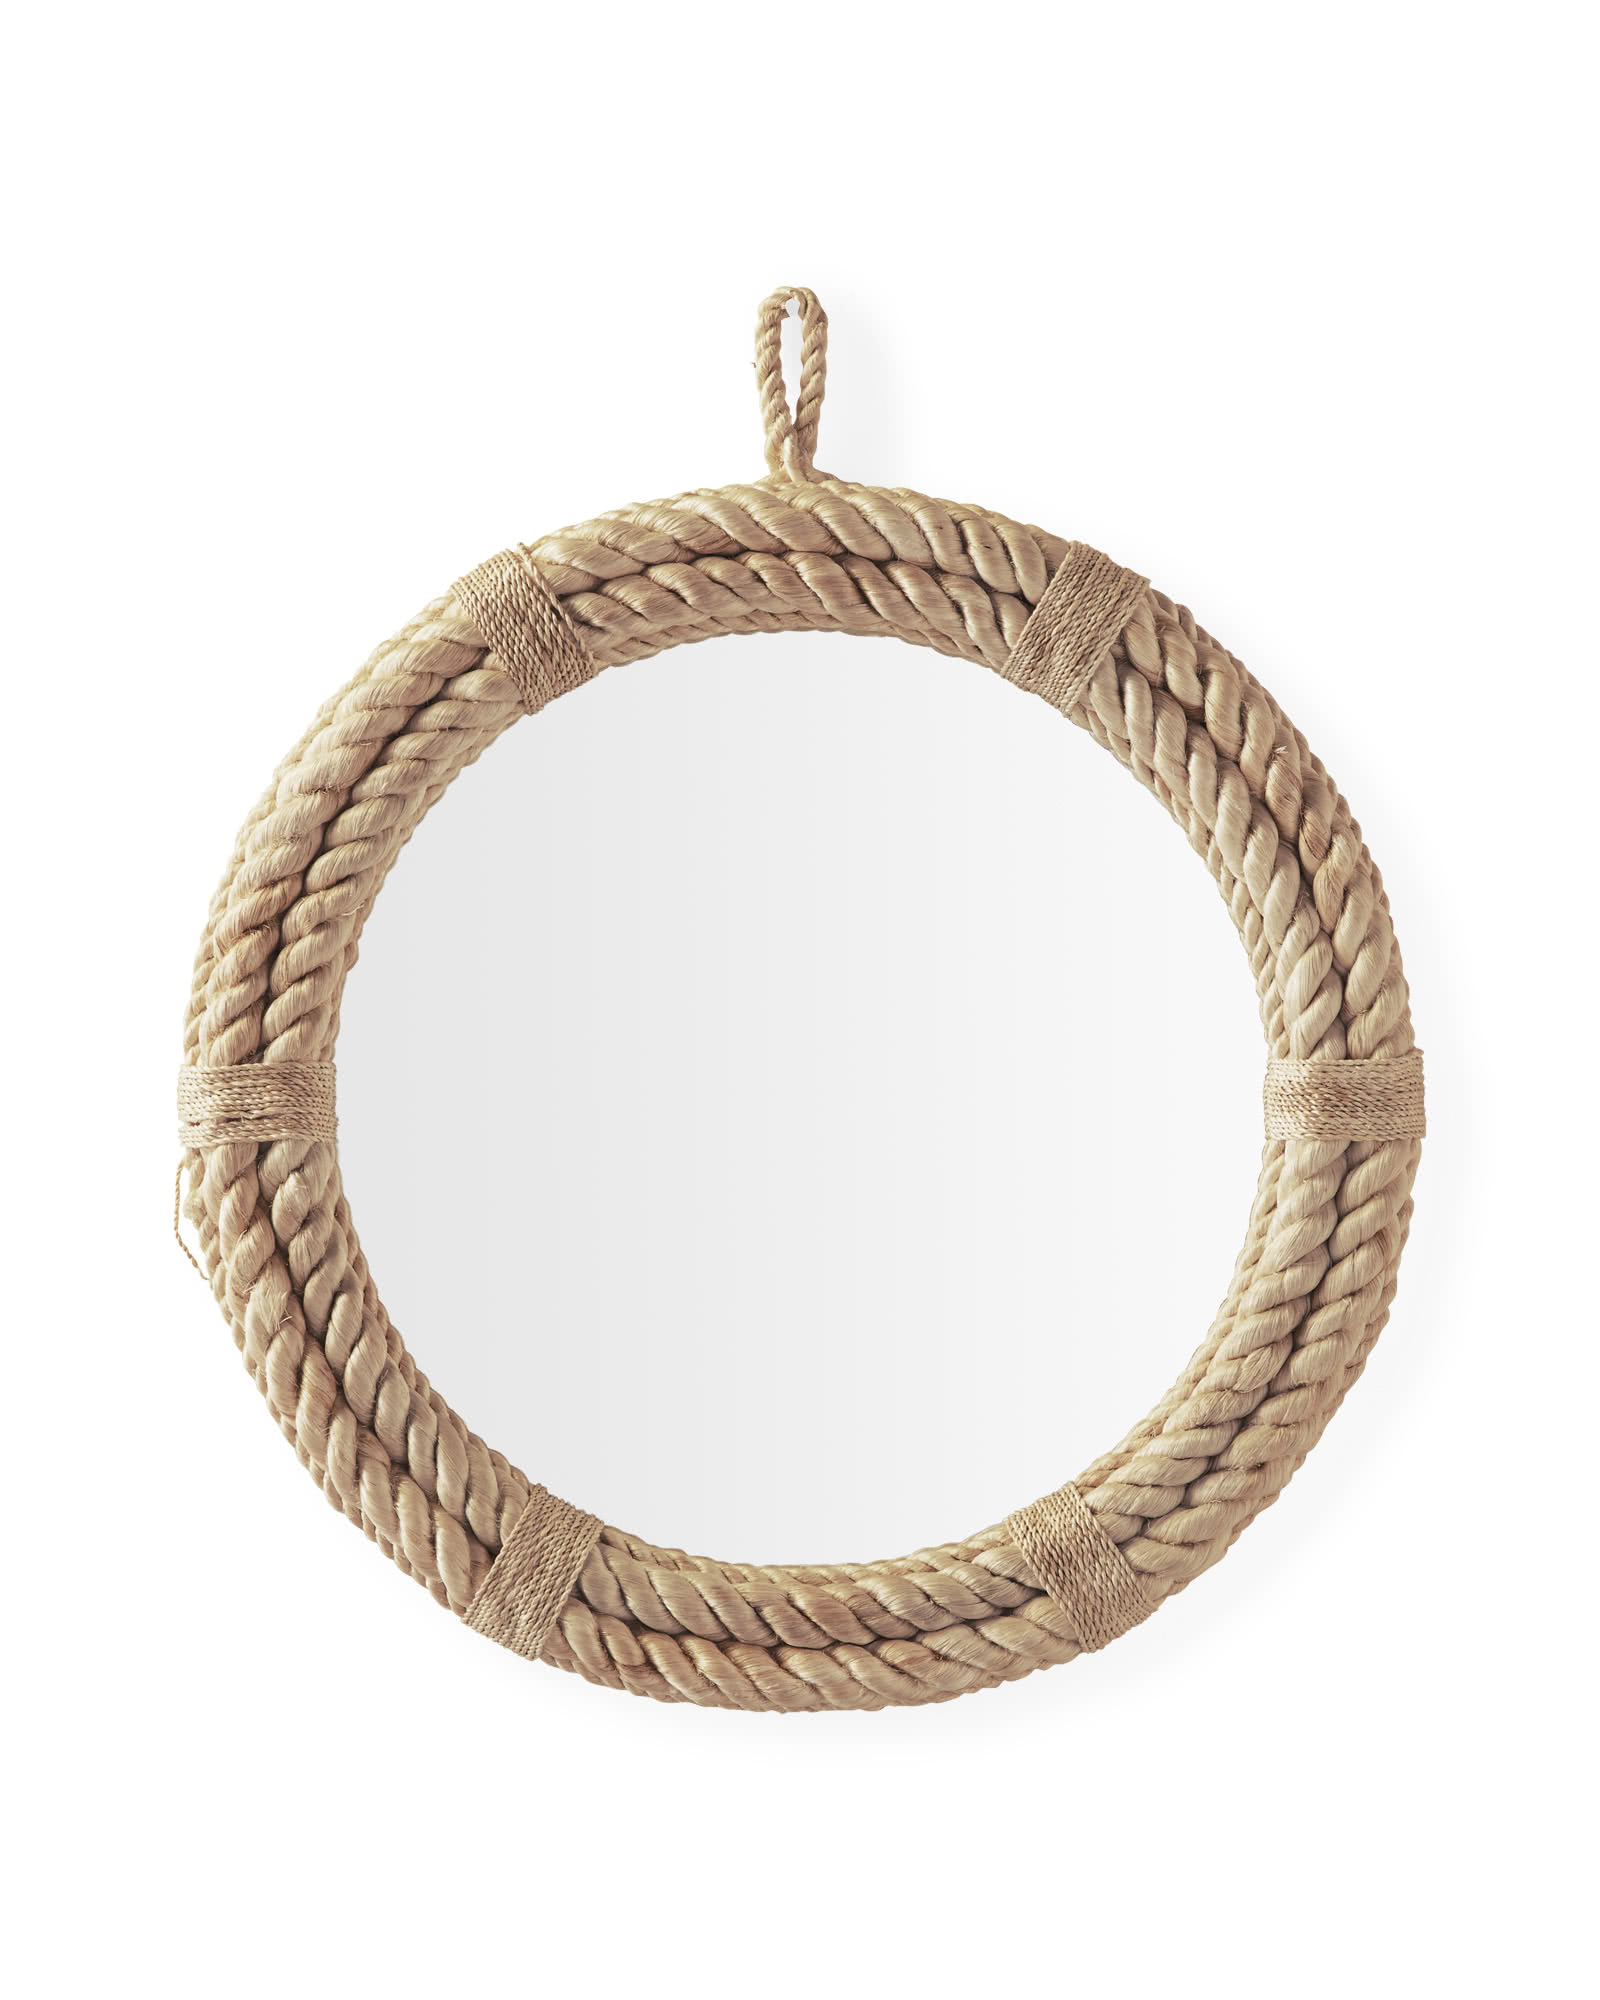 Nautical Rope Mirror,